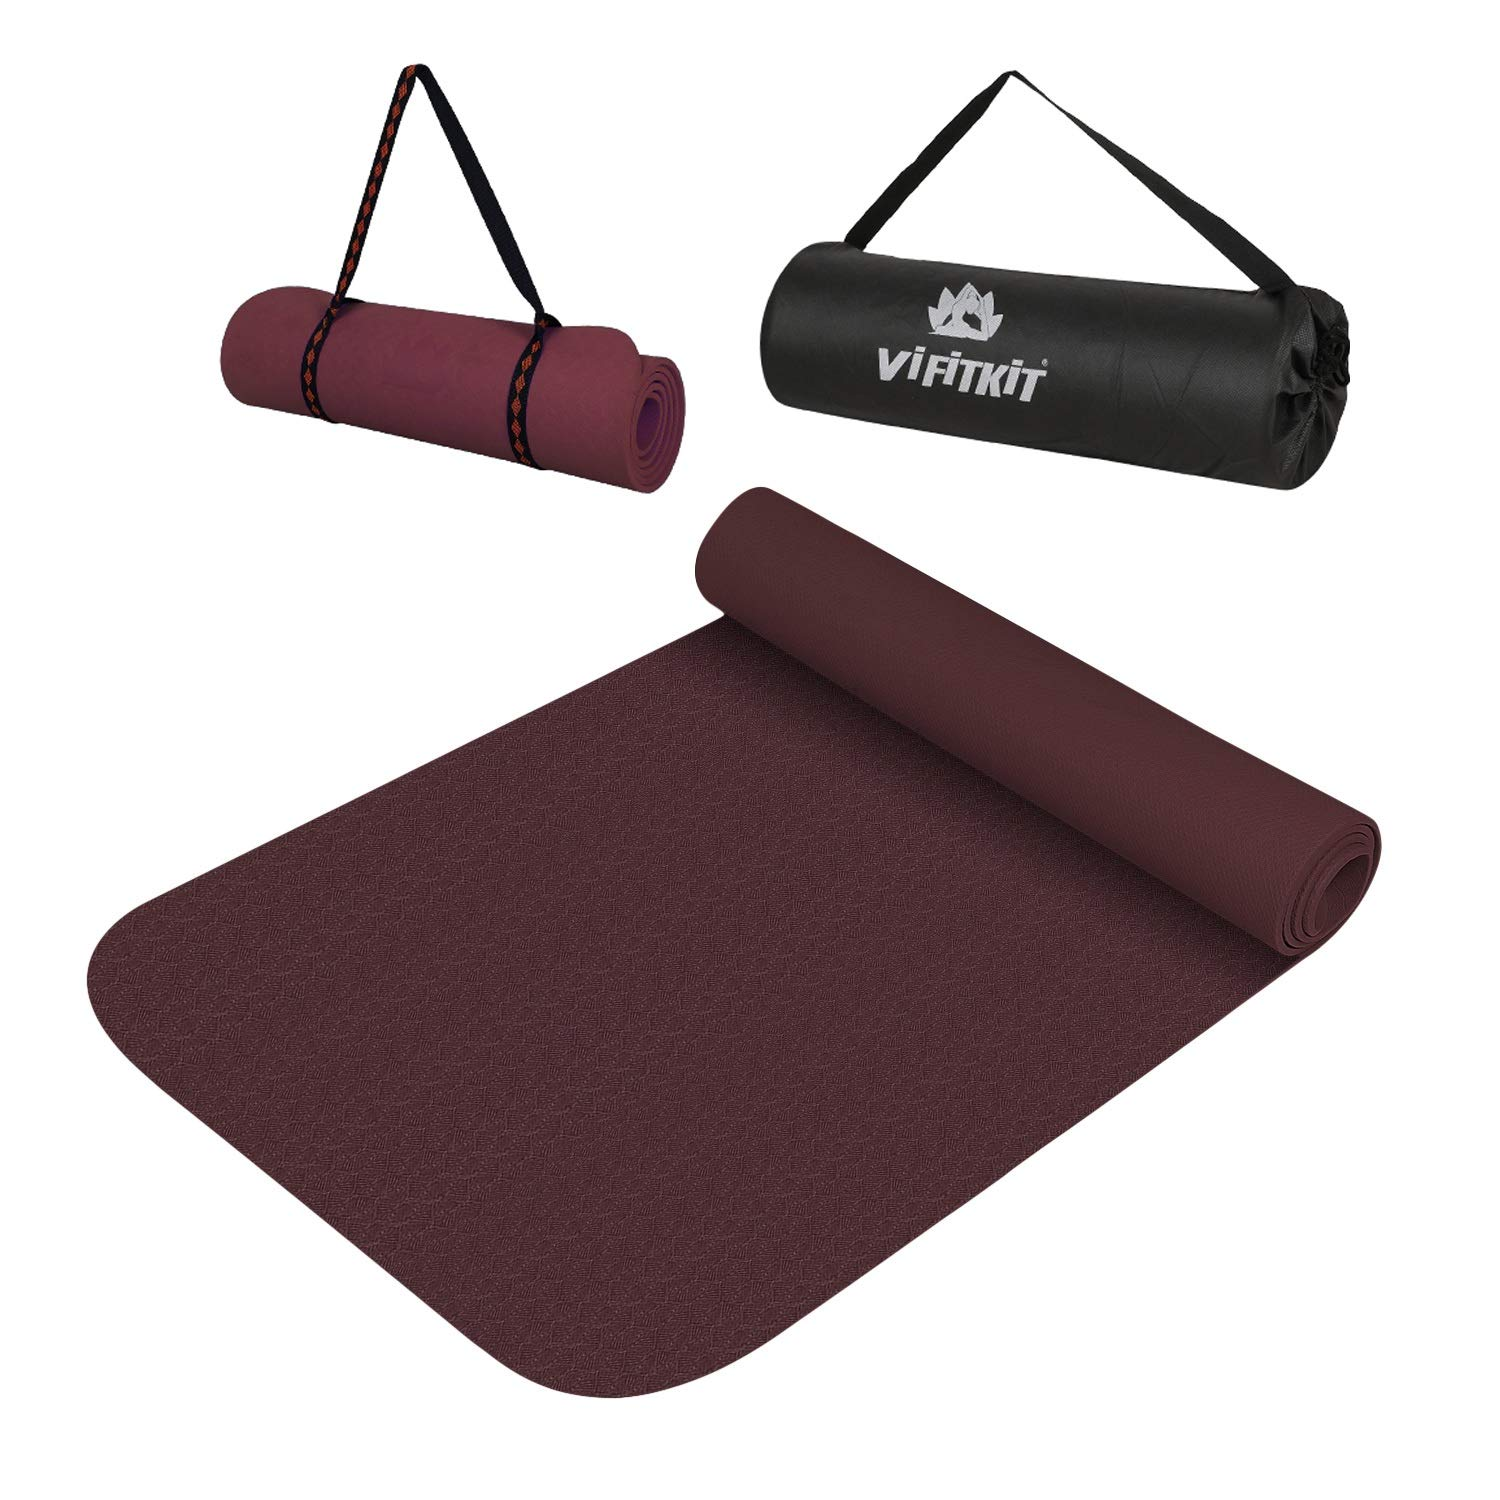 VIFITKIT Extra Thick Yoga and Exercise Mat